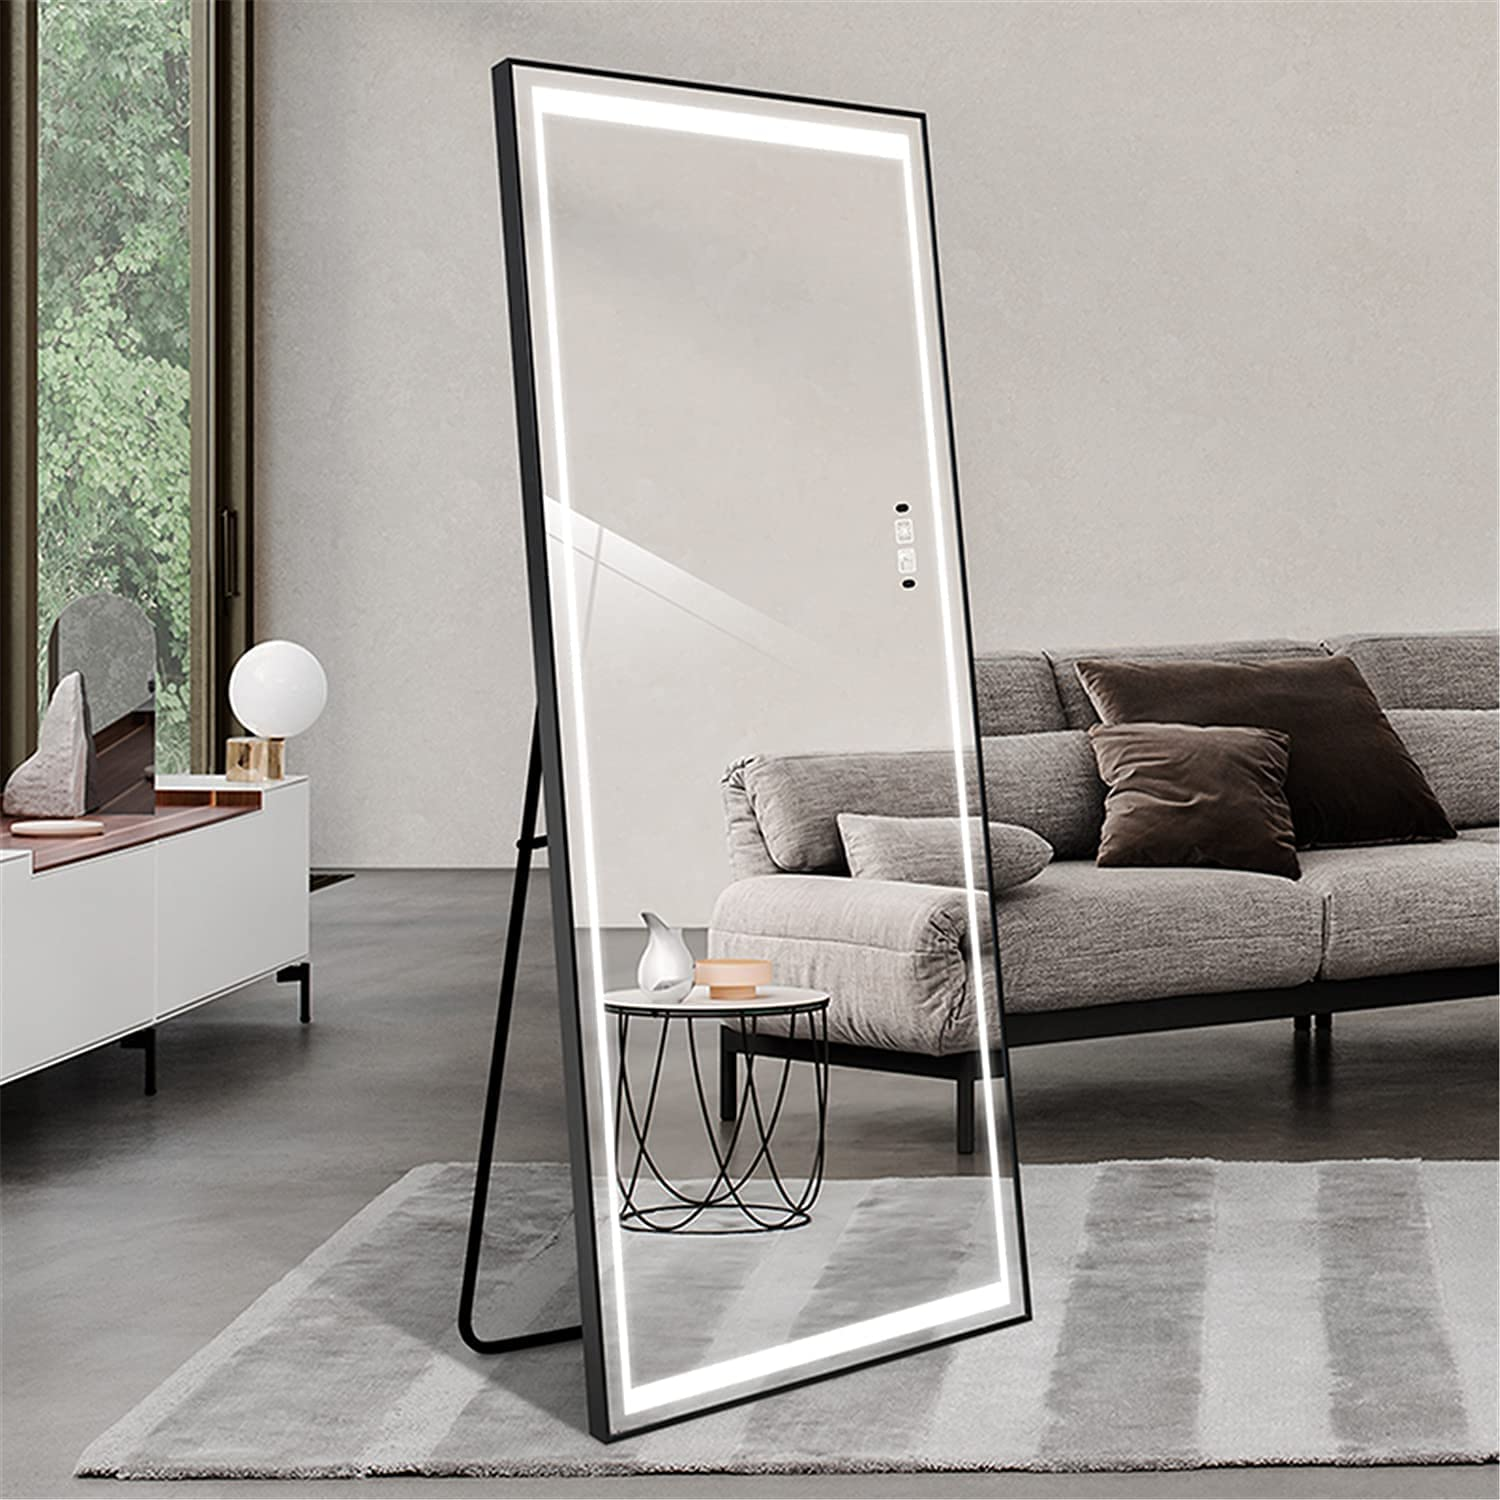 """LAIYA 65""""24"""" LED Mirror Wall Full Length Mirror with Lights Stand Light Up Body Mirror Tall Full Size Big Bedroom Mirror Giant Full Body Mirror Large Floor Mirror with Lights Leaner Lighted Mirror"""